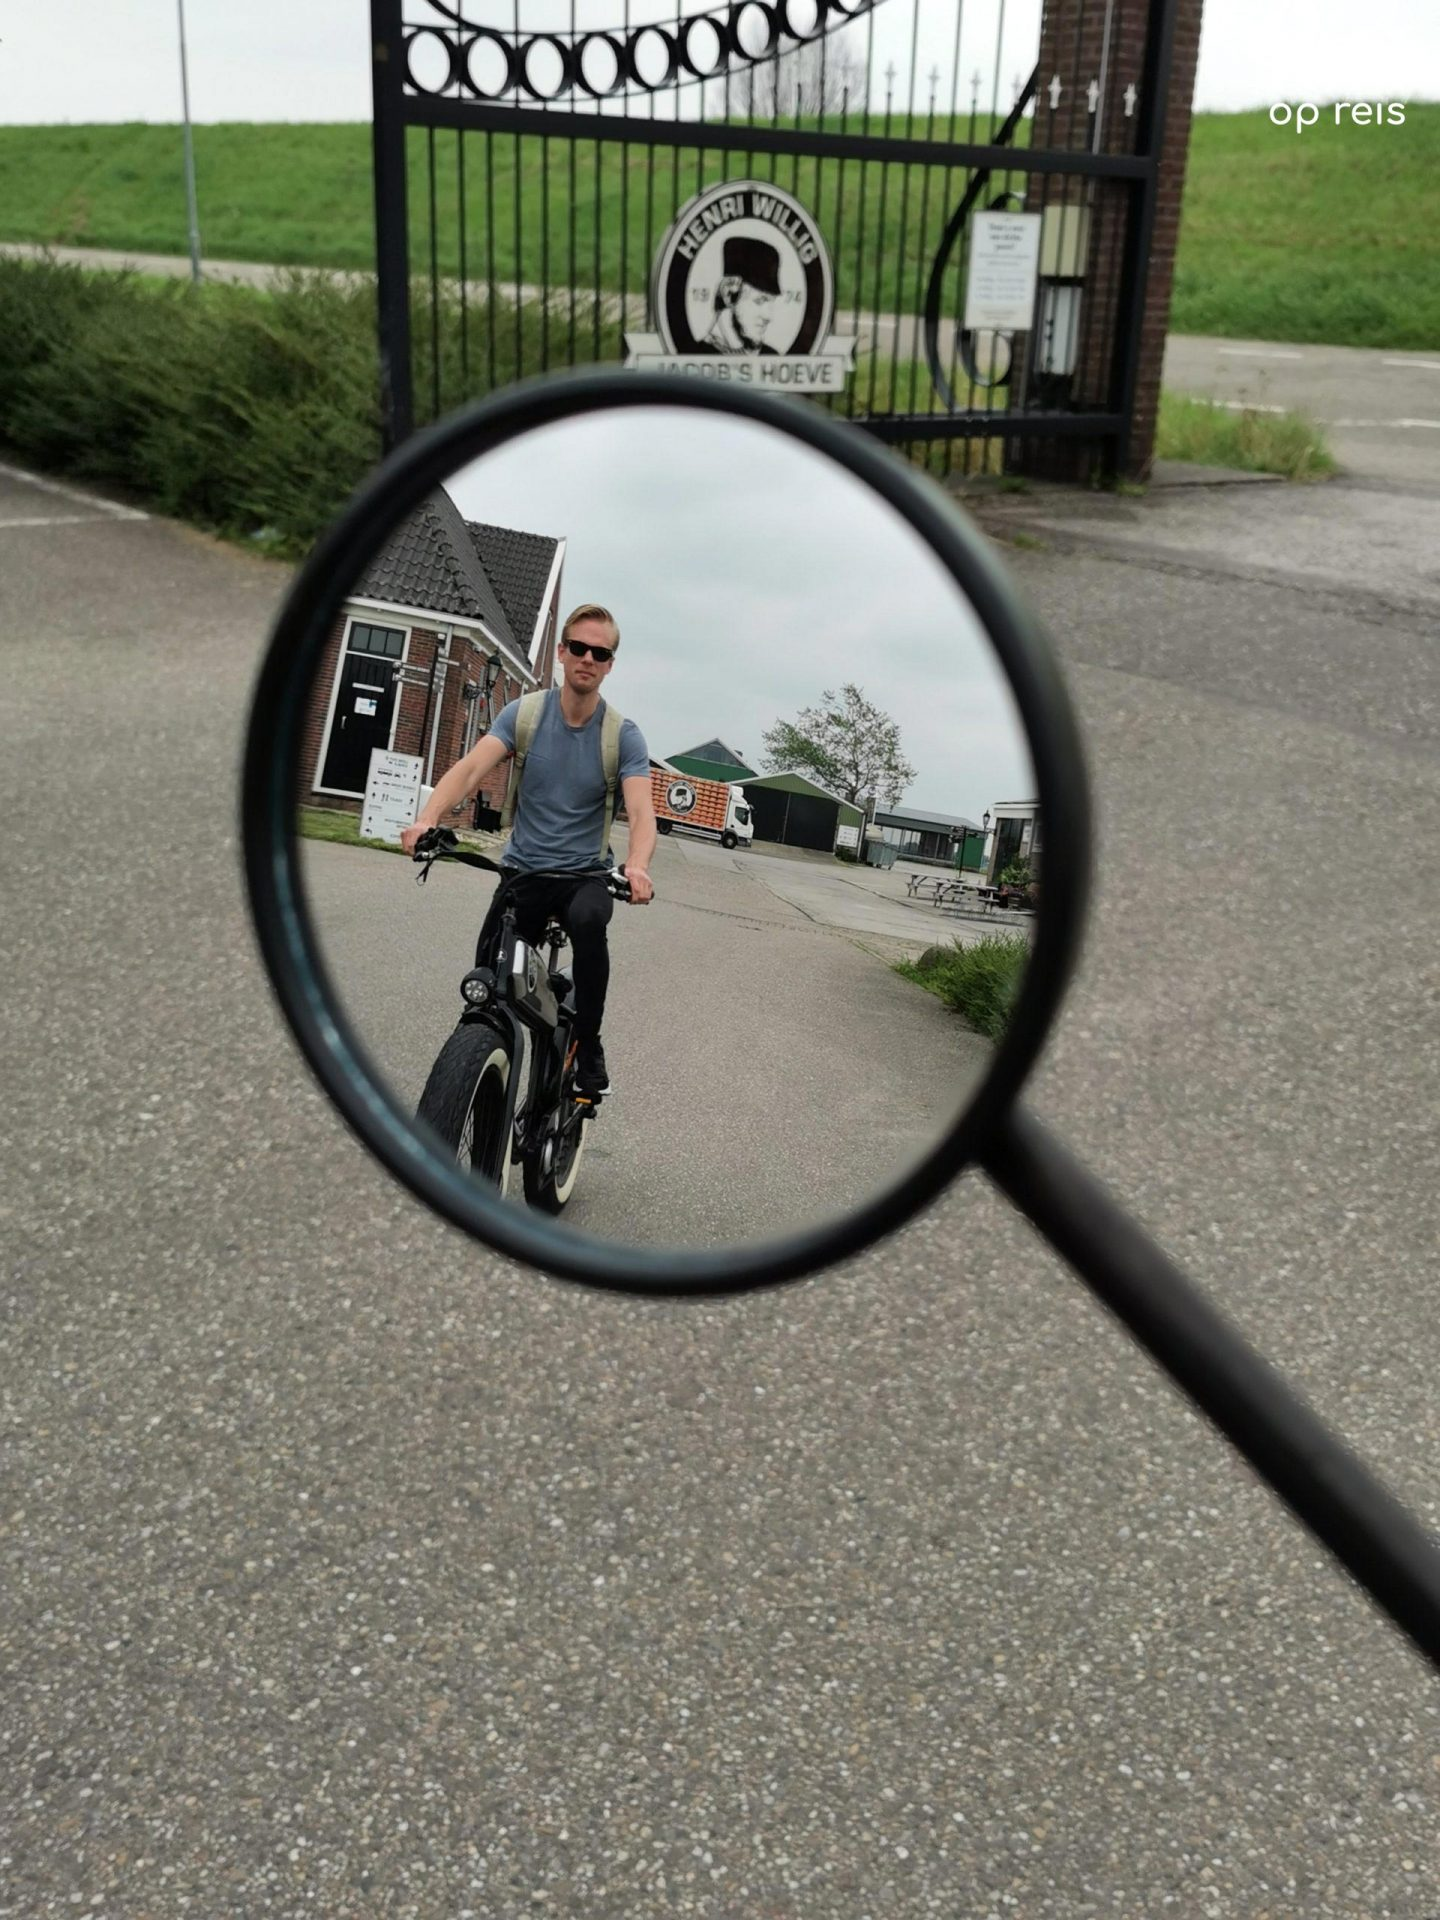 Cruising on the fat bike - Patrick is riding a fat bike in the rear-view mirror of the e-scooter